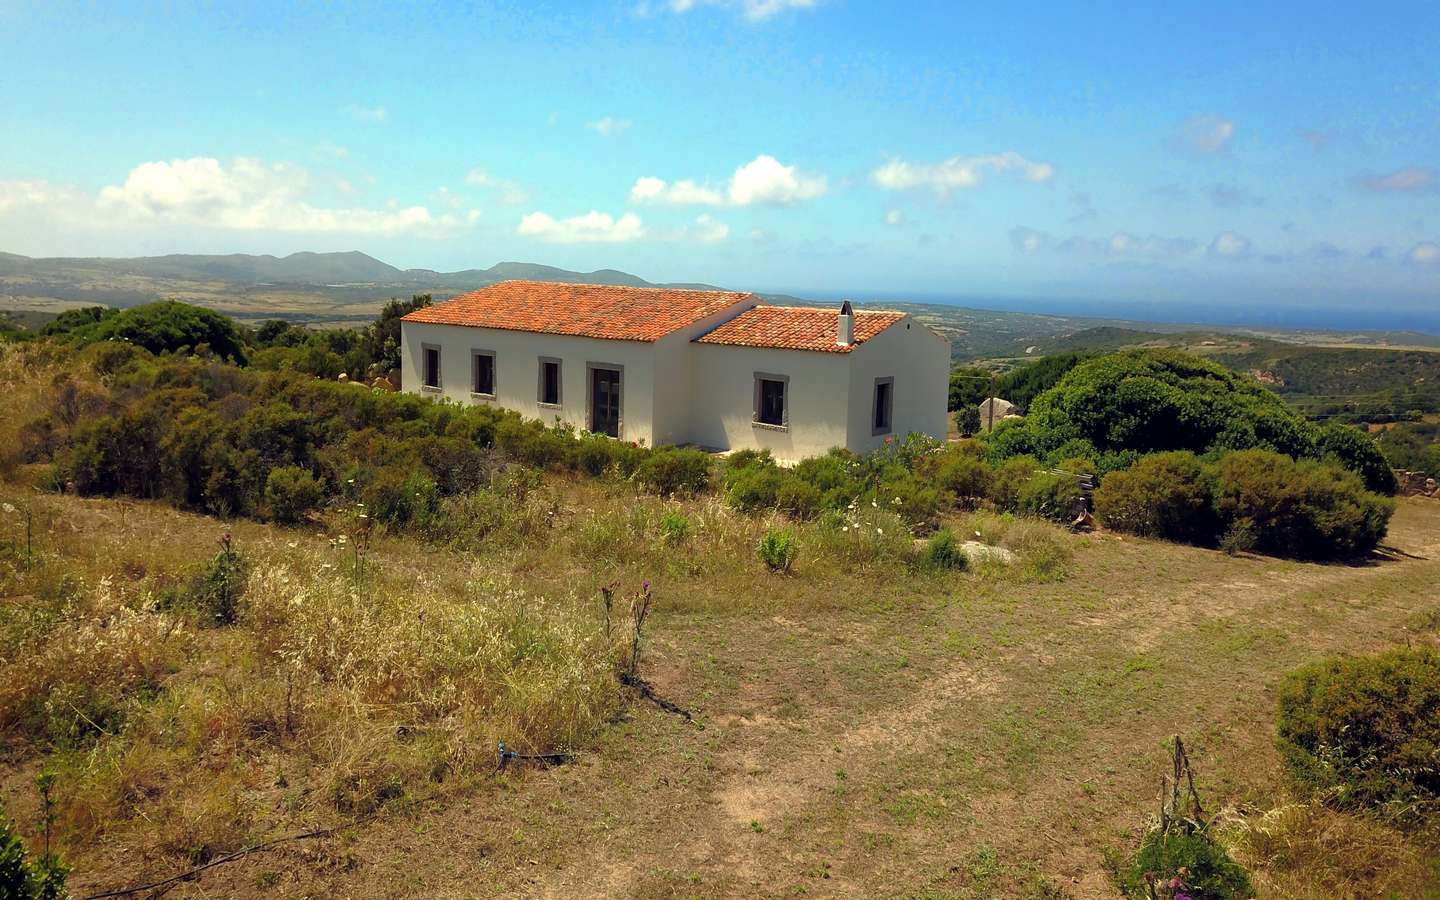 1.5  Ha Land With Sea-Vistas and 164 M2 Cottages for Sale in Aglientu, 5,5 Km from the Sea, Northern Sardinia